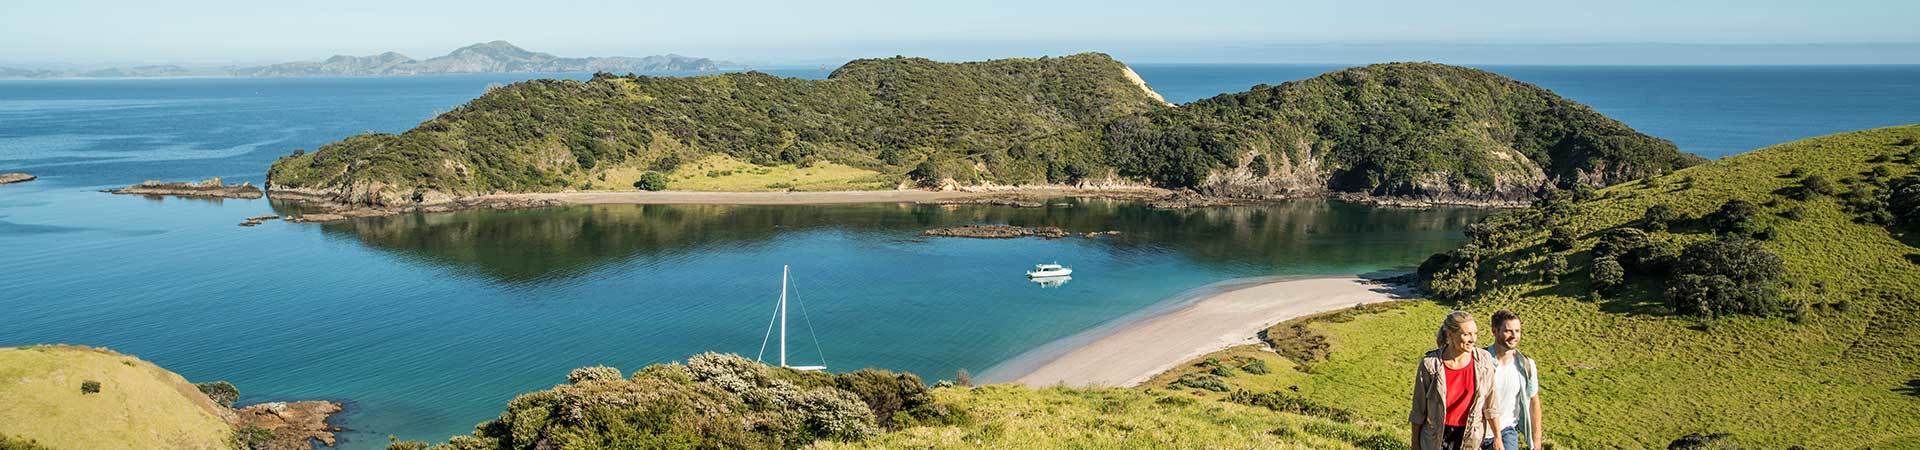 Couple enjoying walk overlooking scenery across Bay of Islands